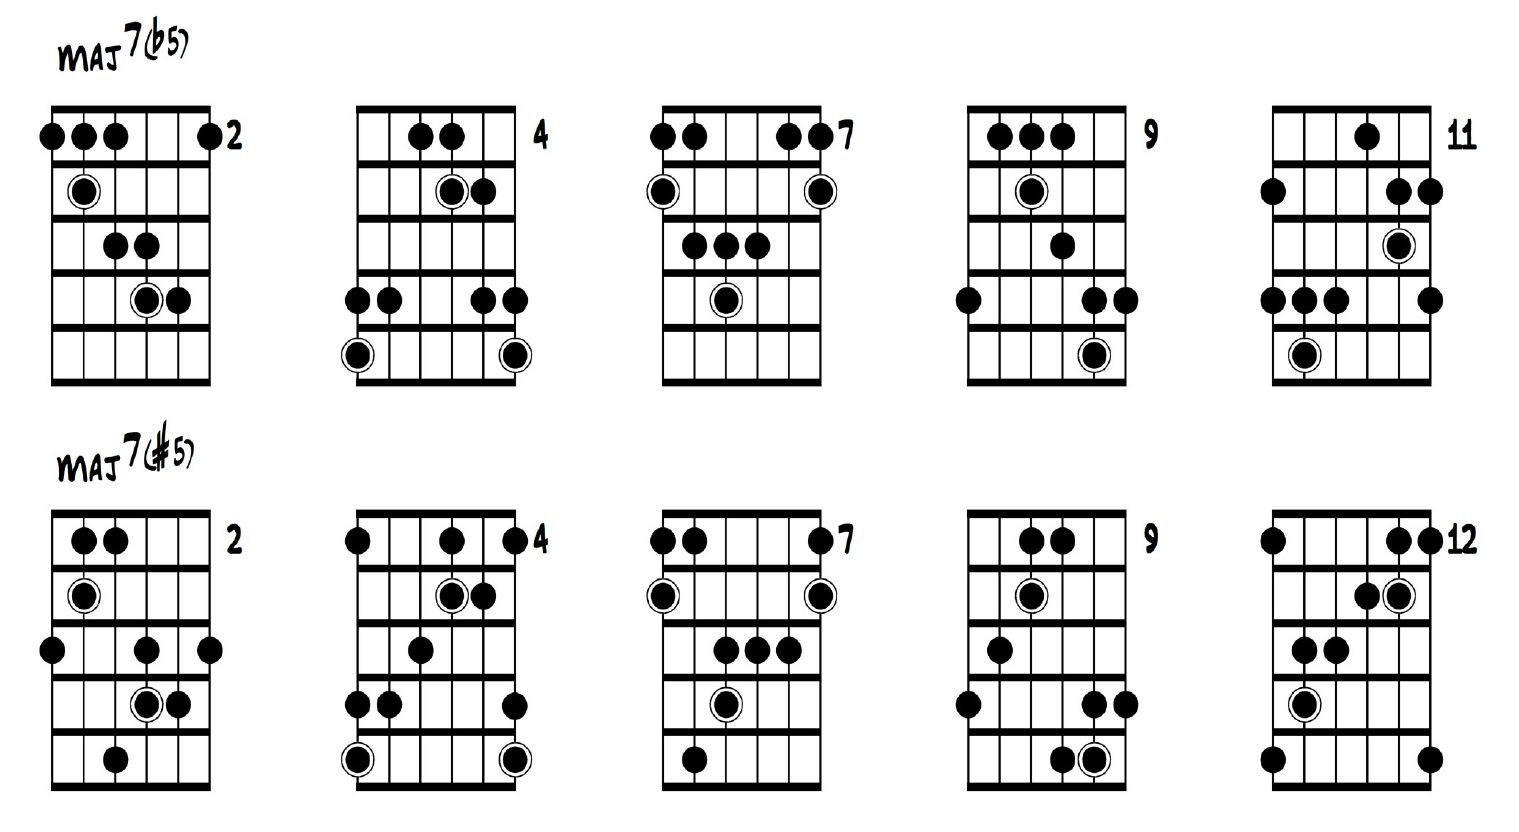 Guitar Maj7 B5 And Maj7 5 Arpeggios Diagrams